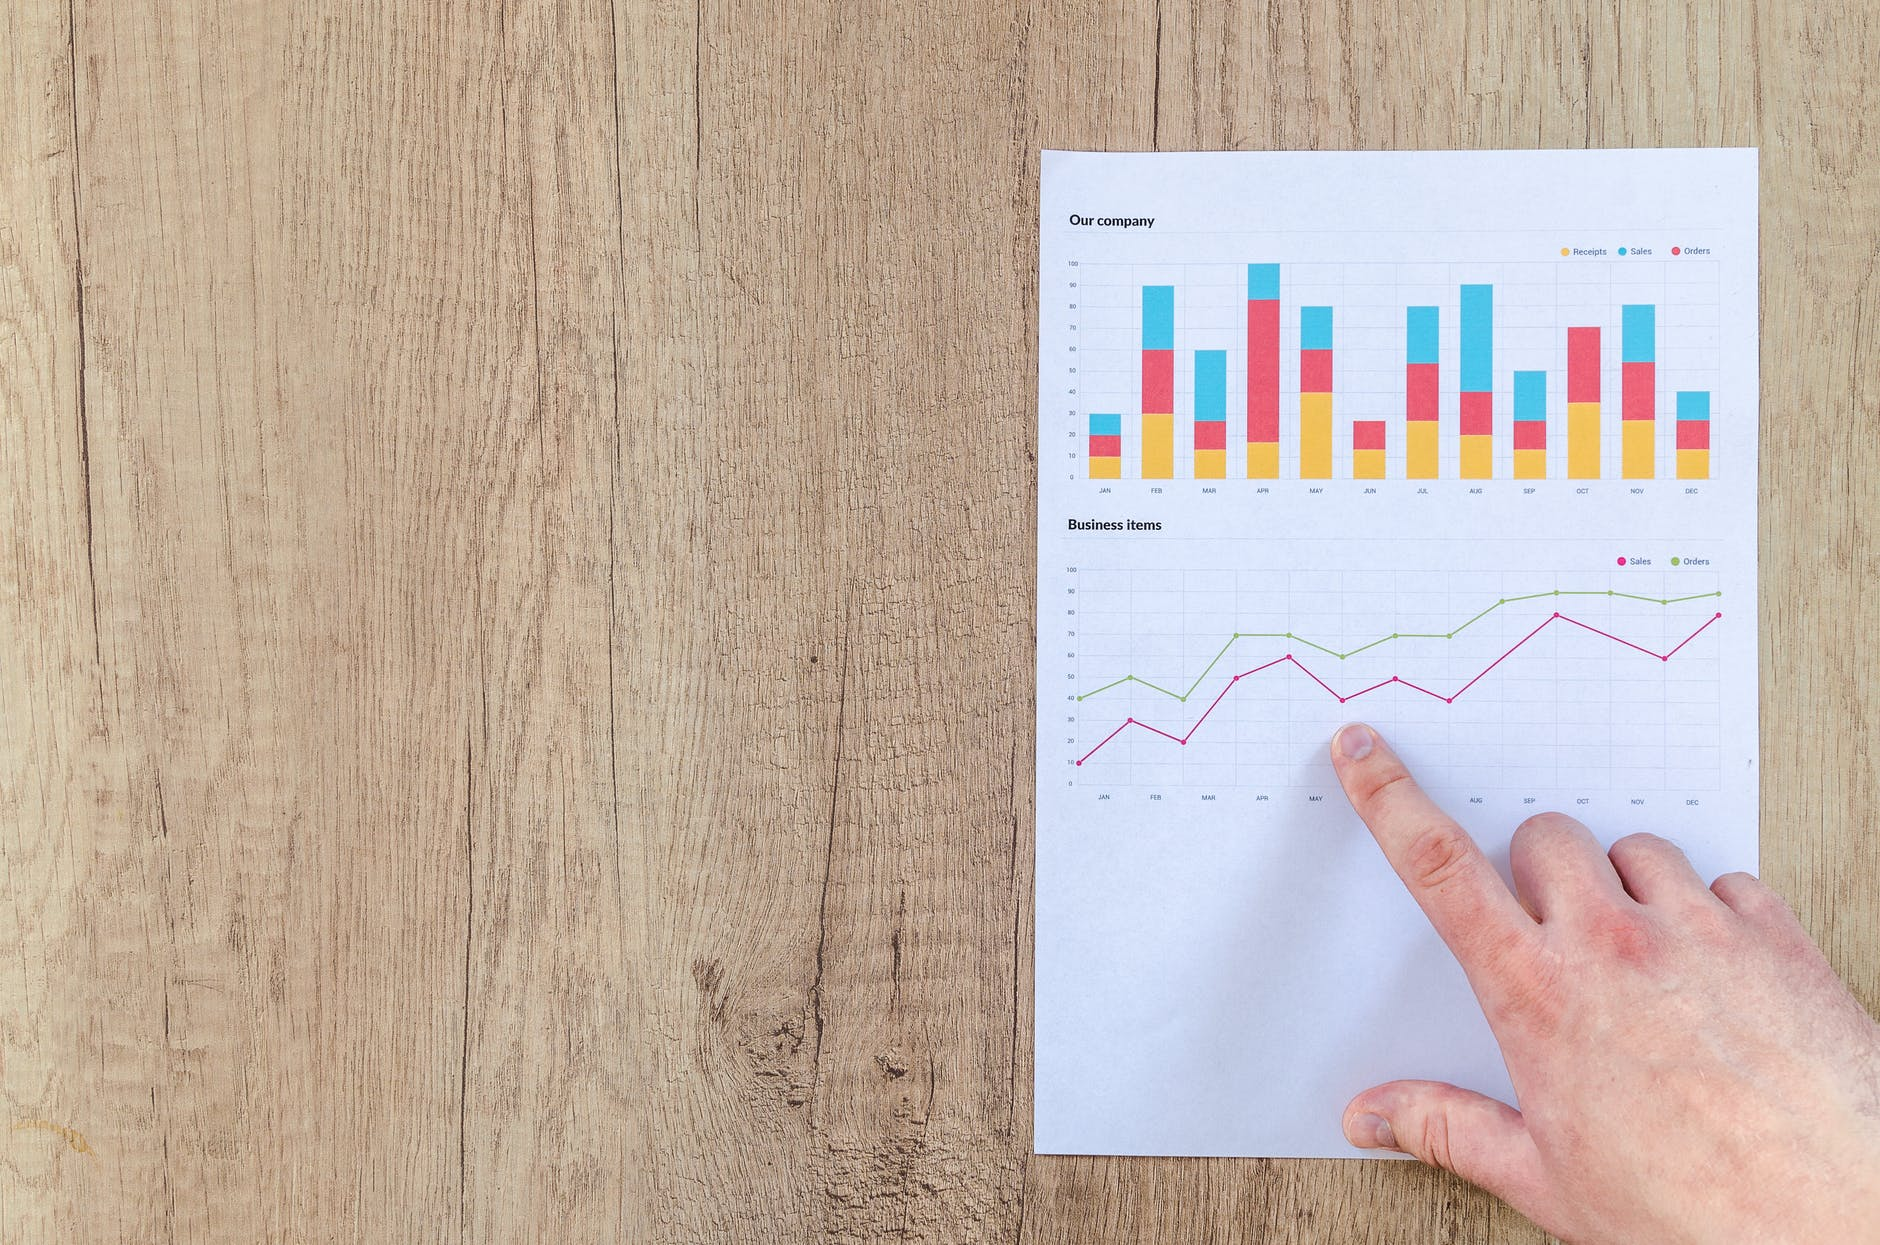 17-kpis-you-should-know